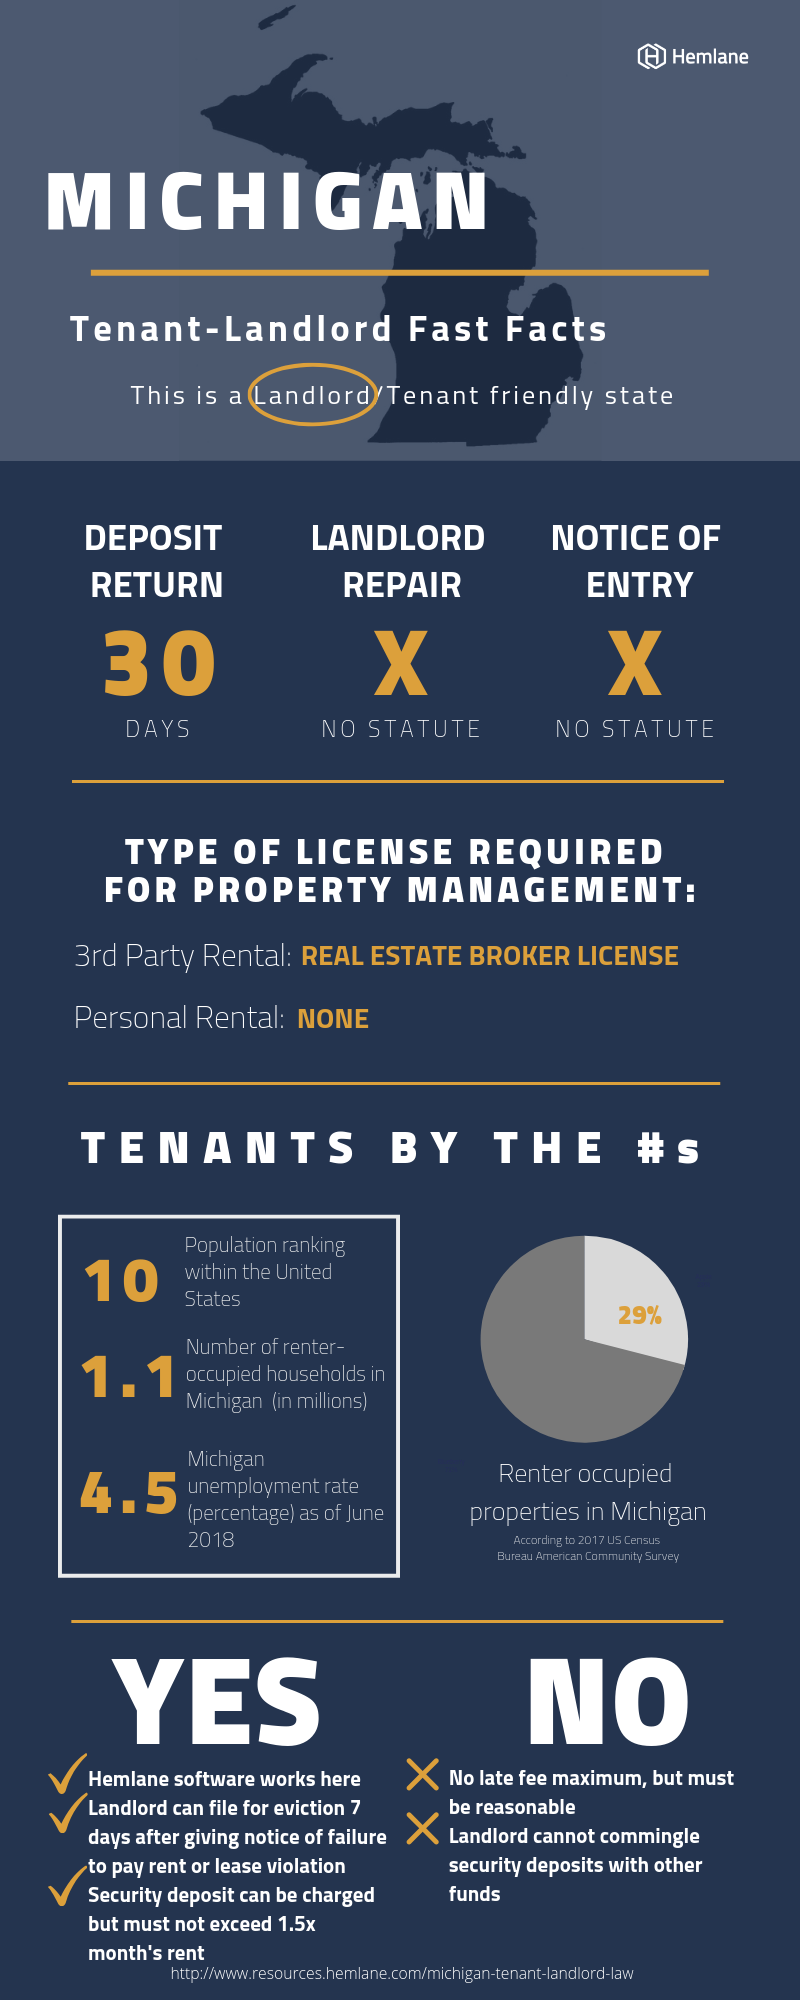 Michigan-Tenant-Landlord-Law-Fast-Facts